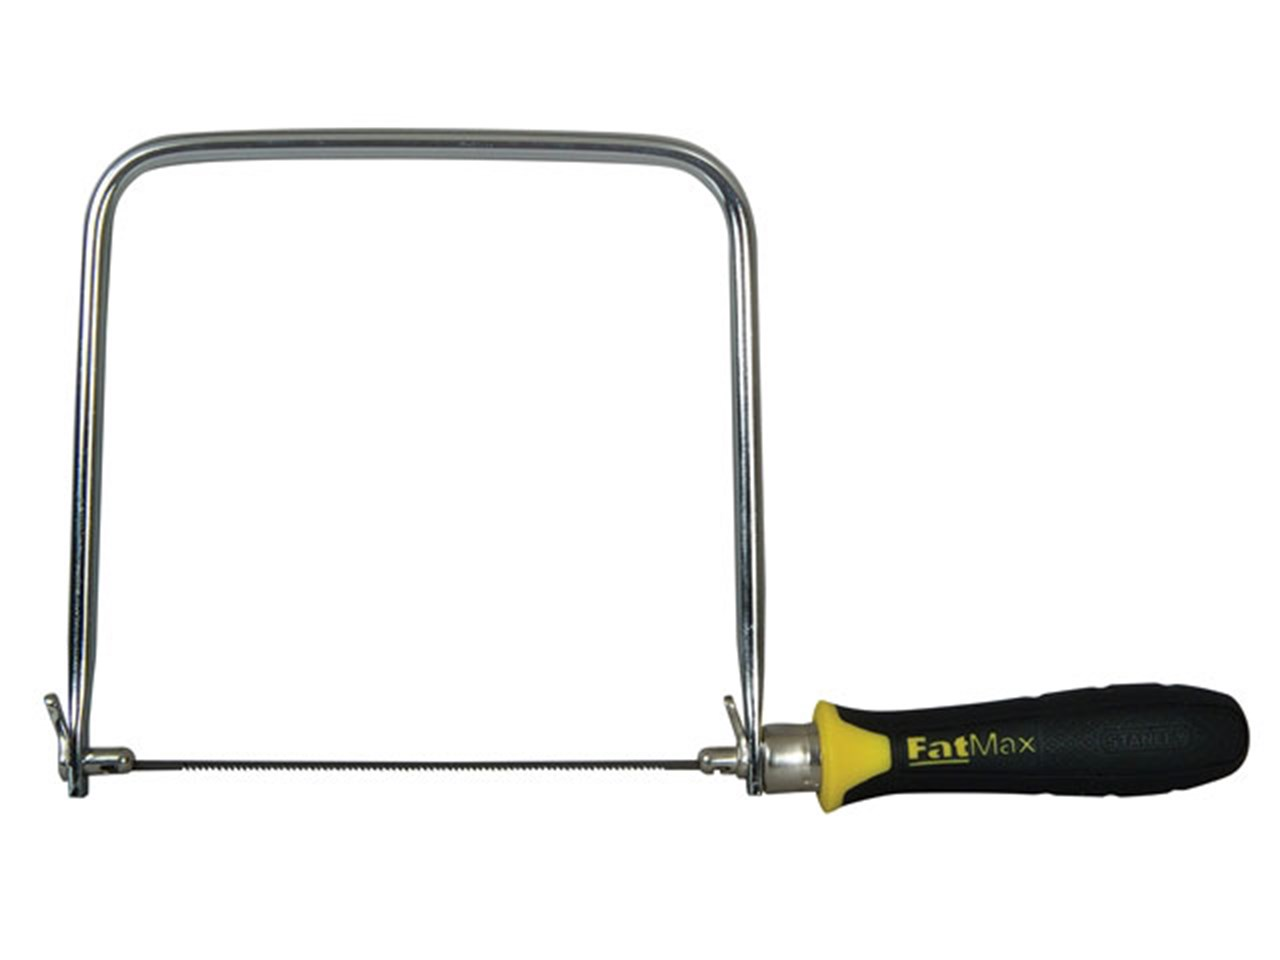 Stanley sta015106 fatmax coping saw 0 15 106 keyboard keysfo Images